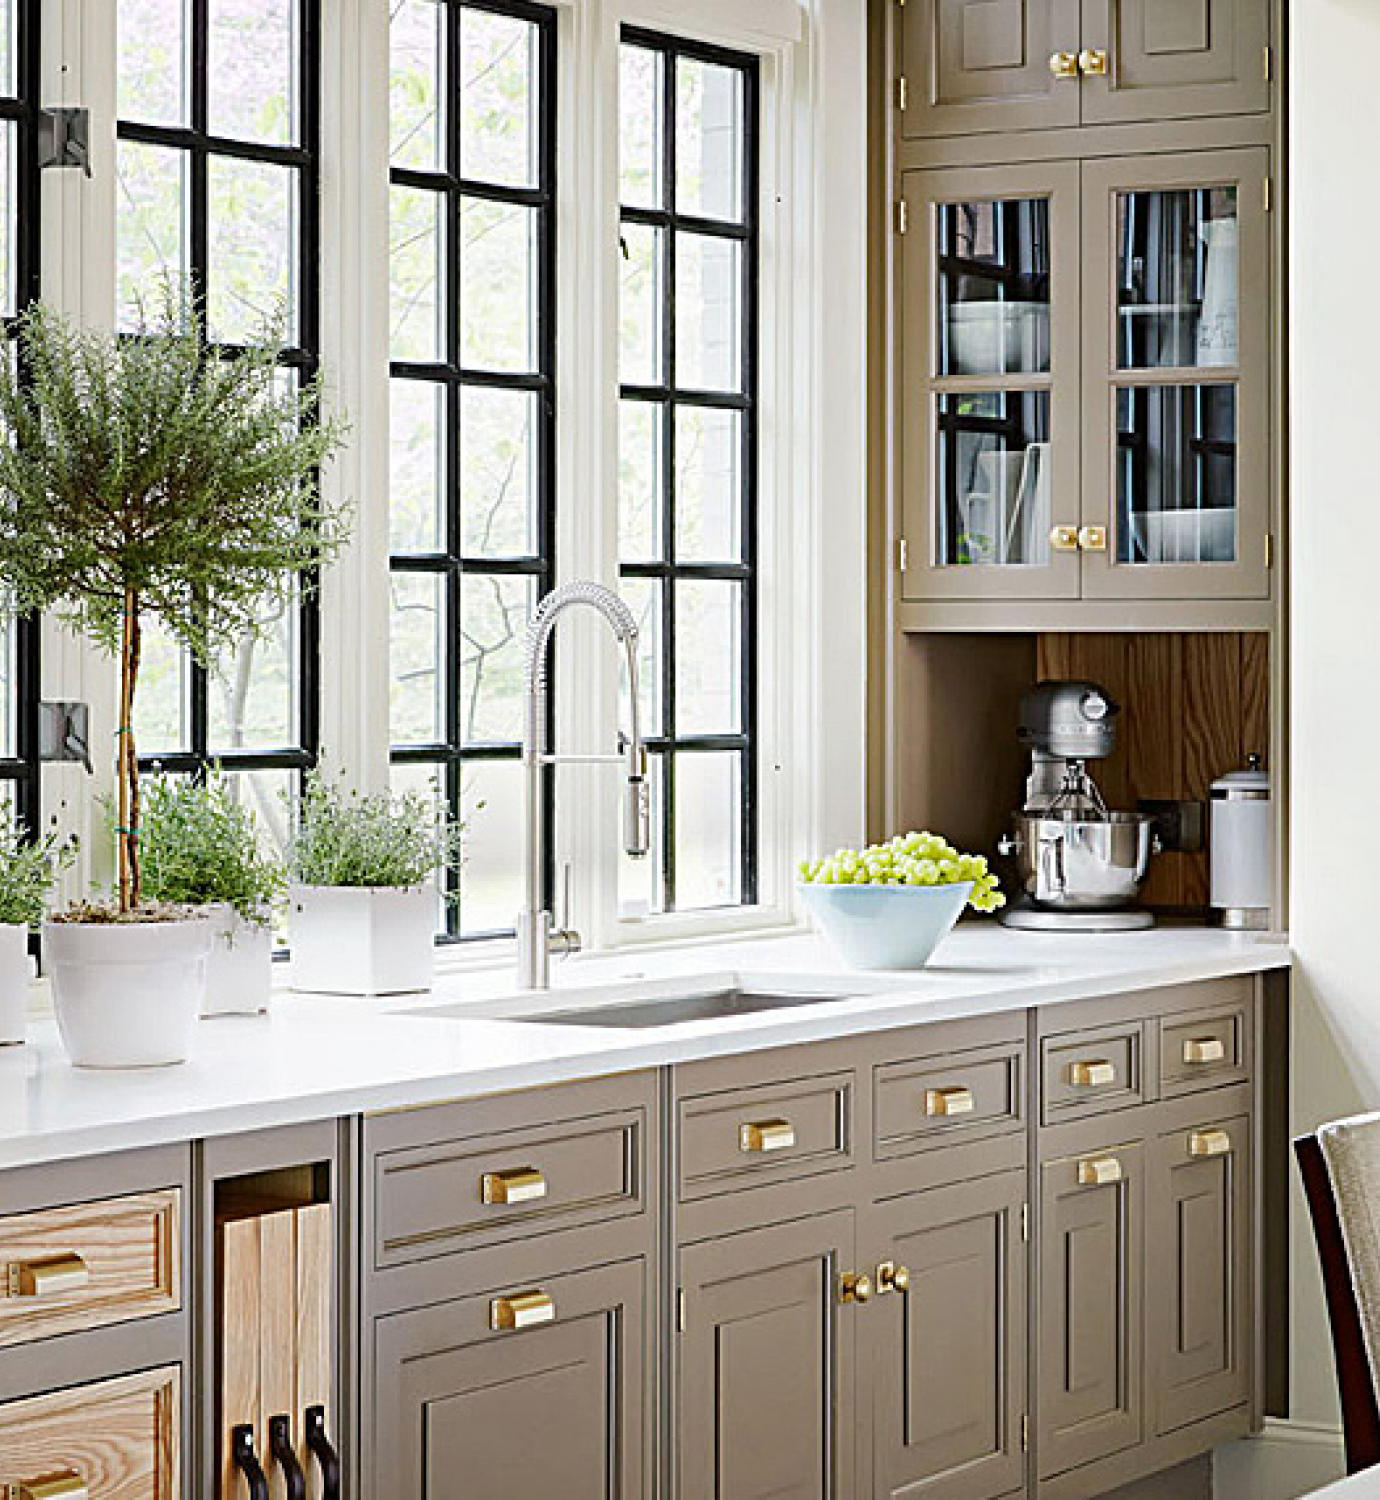 painted kitchen cabinet kitchen ideas kitchen design inspiration gallery of images 1380